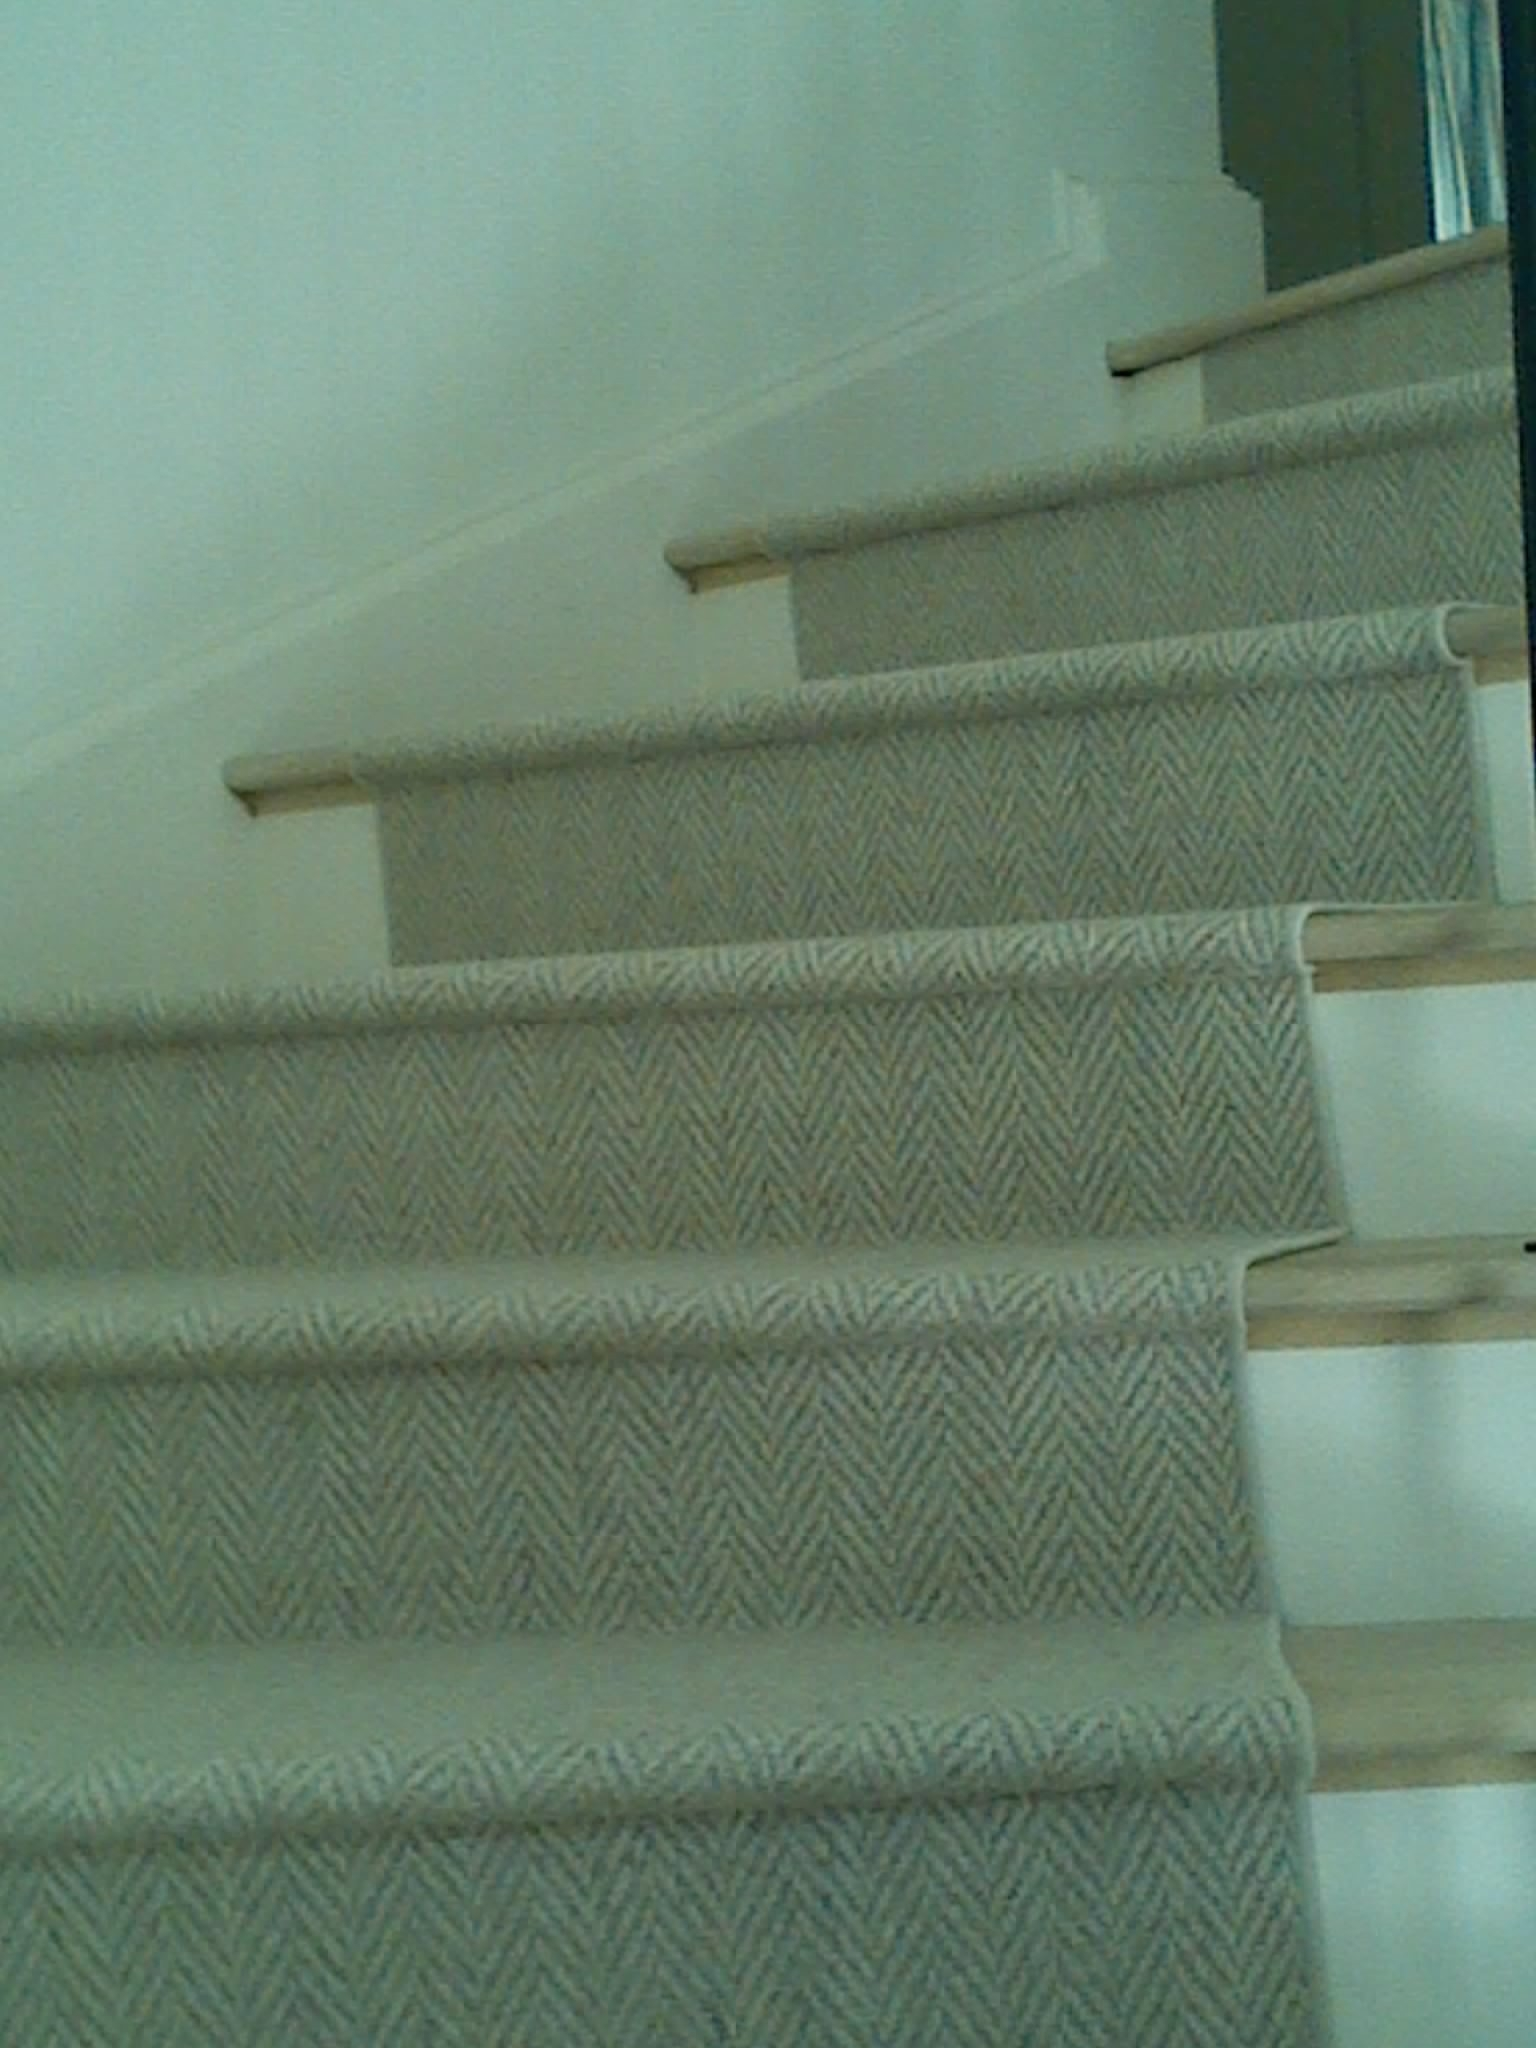 Wool Archives Schroeder Carpet | Herringbone Carpet For Stairs | High Traffic | Textured | Classical Design | Striped | Carpet Stair Treads